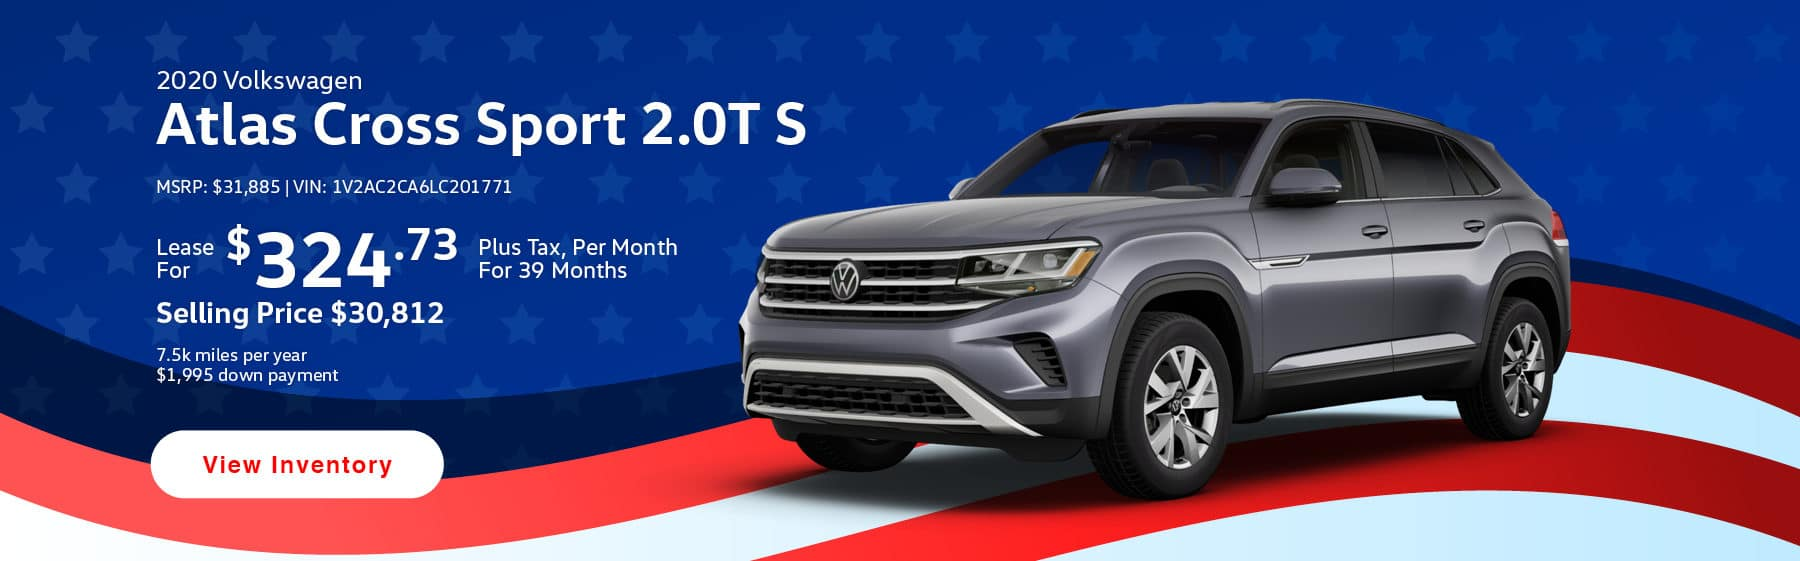 Lease the 2020 Atlas Cross Sport 2.0T S for $324.73 per month, plus tax for 39 months.